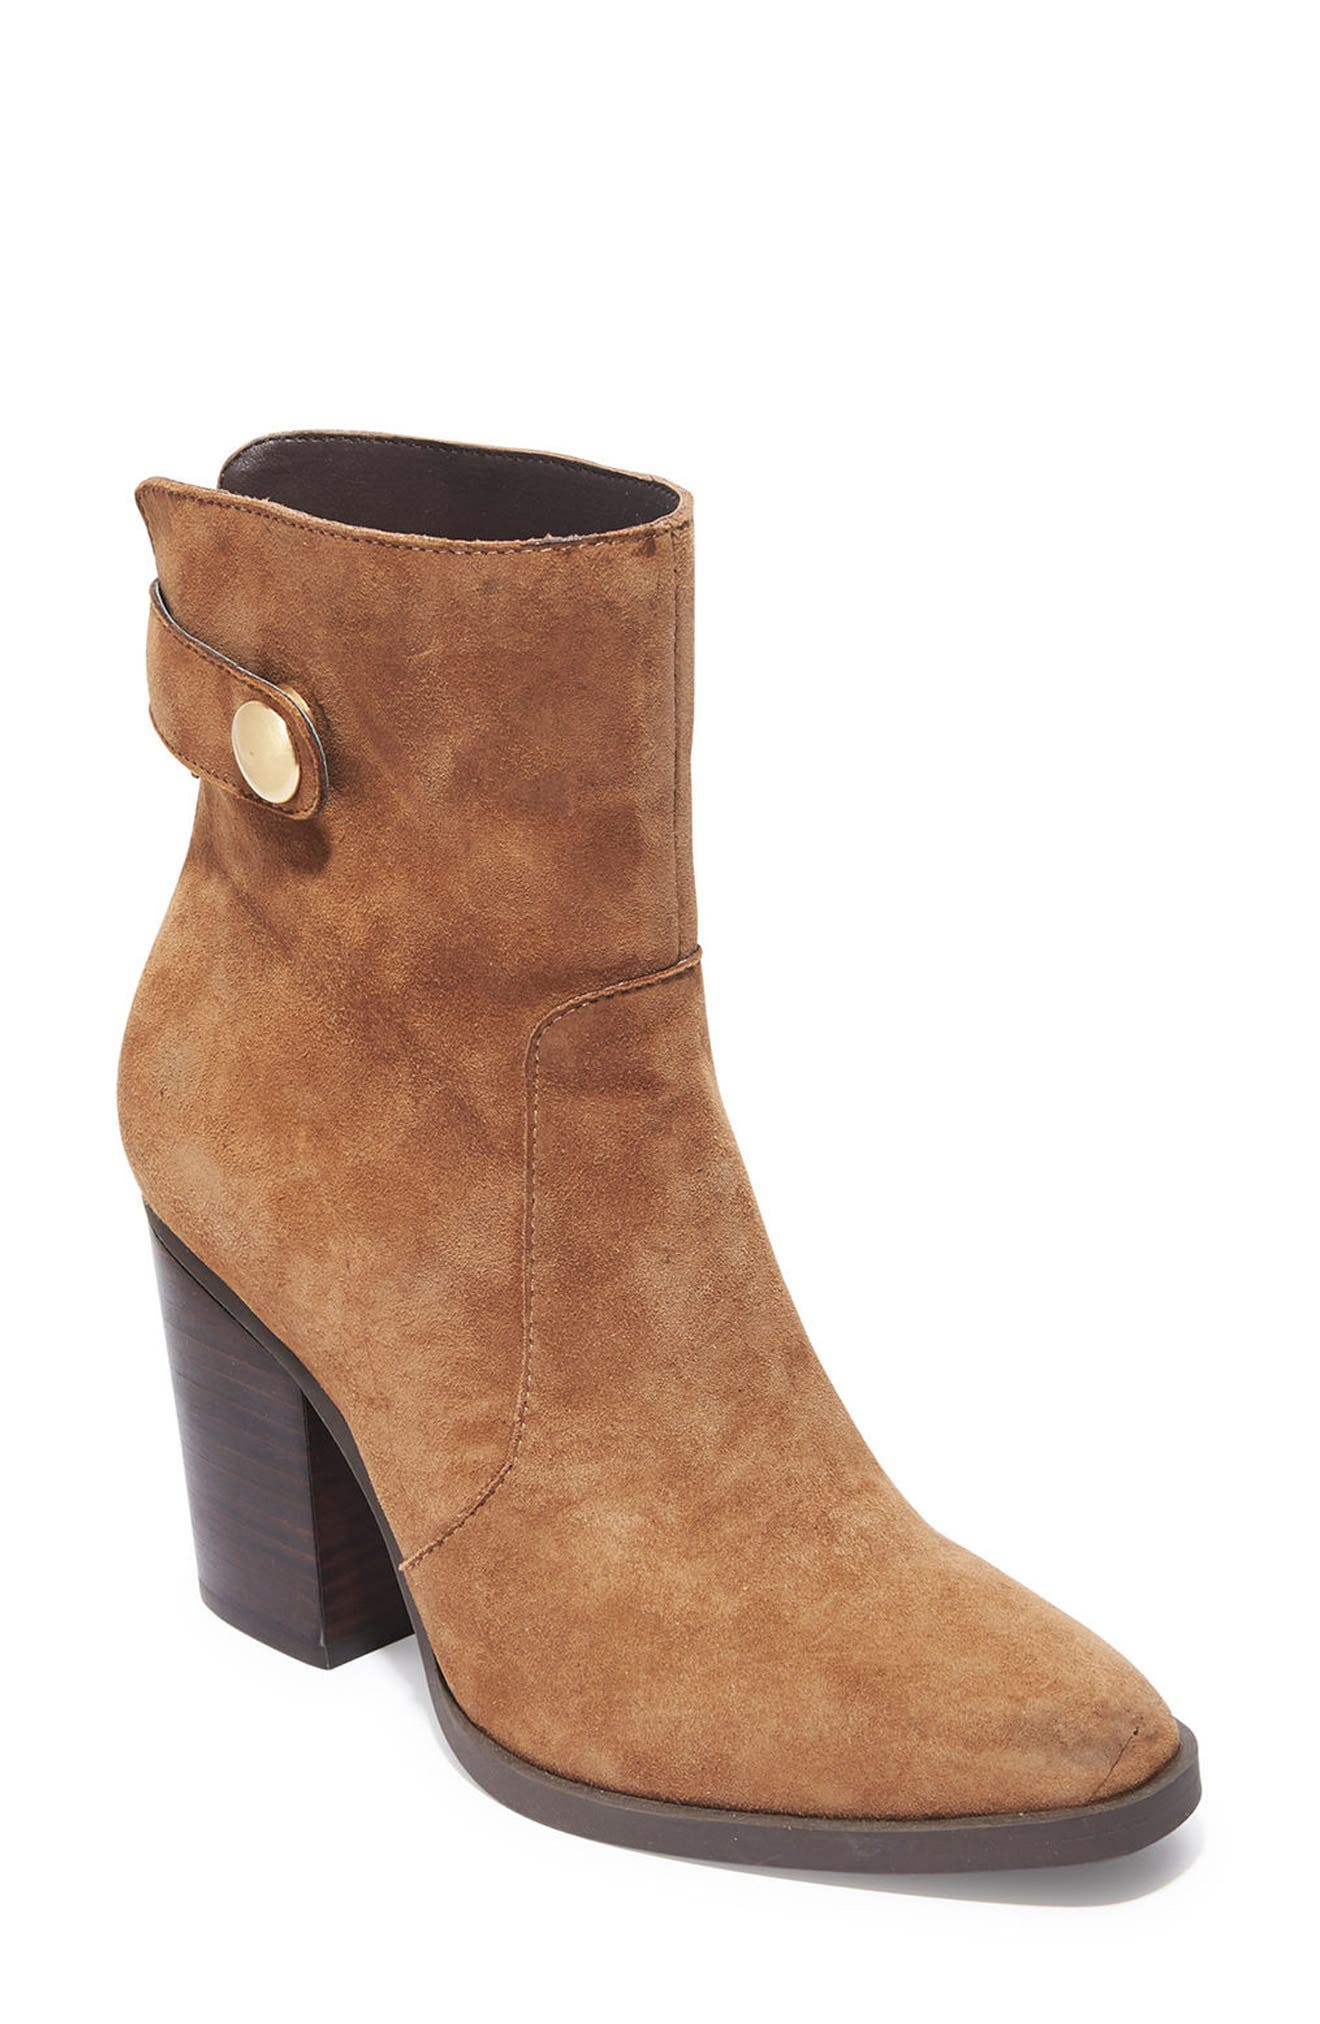 Main Image - Me Too Tara Boot (Women)